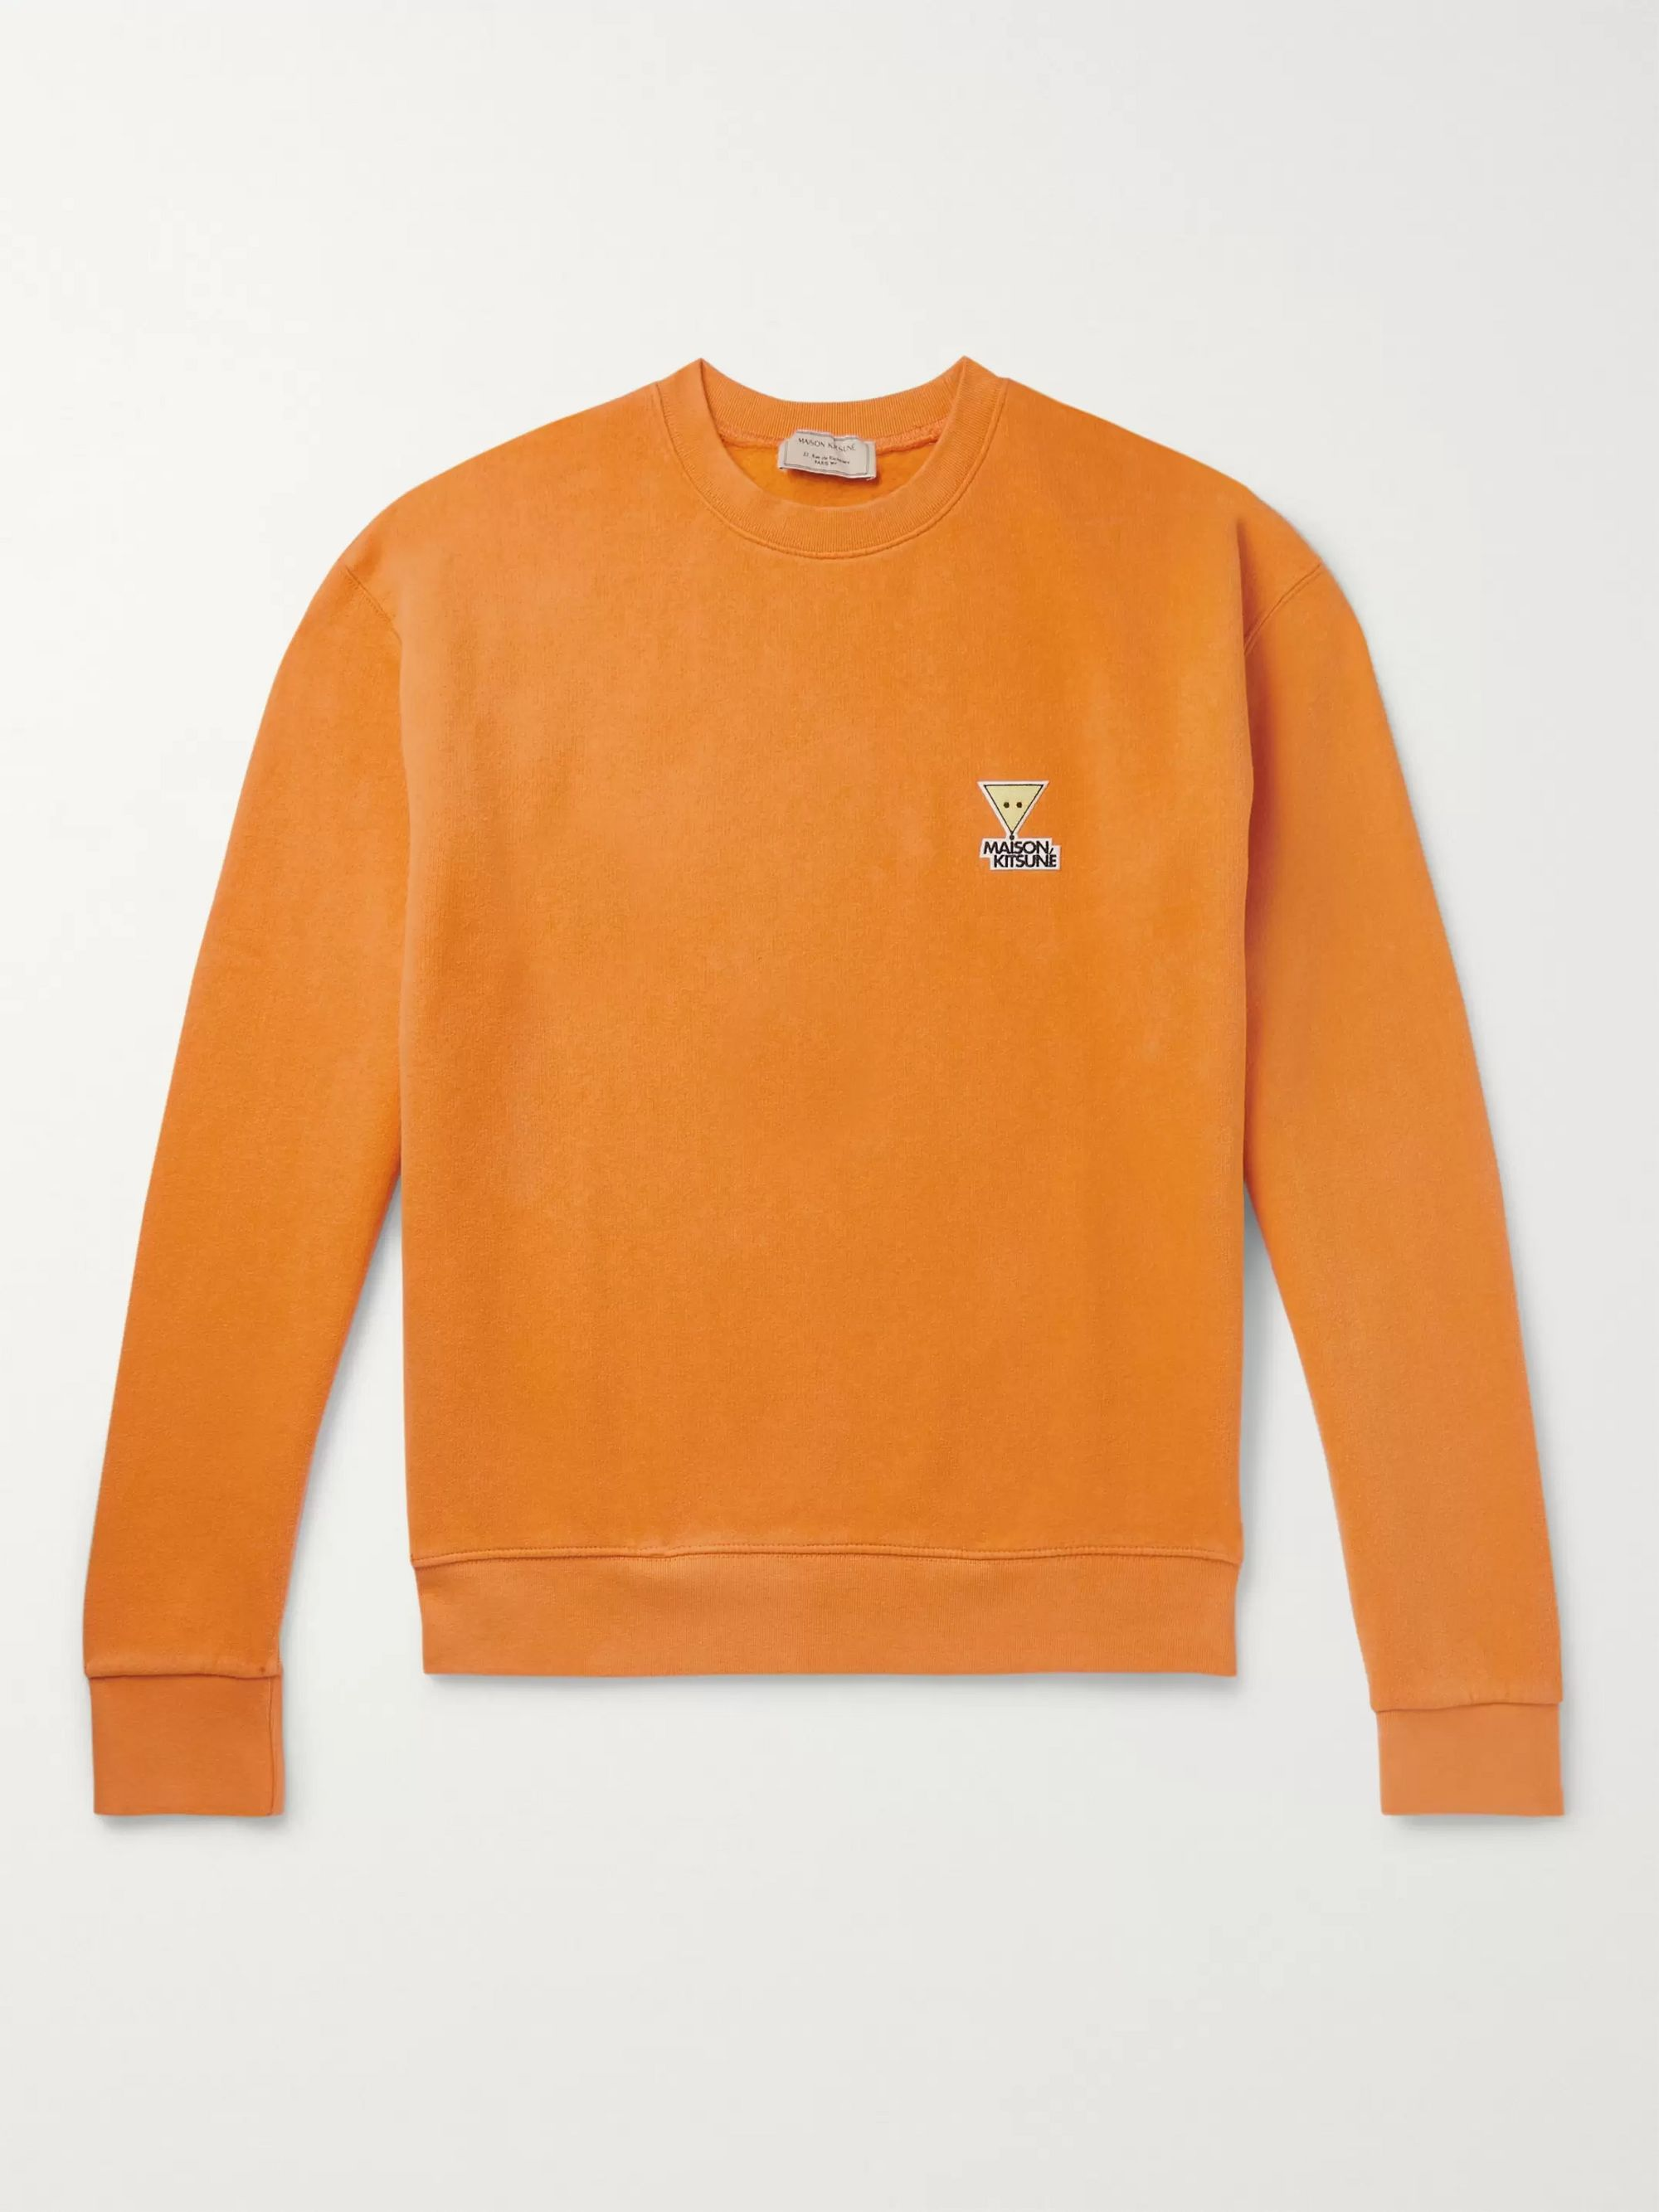 Maison Kitsuné Logo-Appliquéd Fleece-Back Cotton and Wool-Blend Sweatshirt